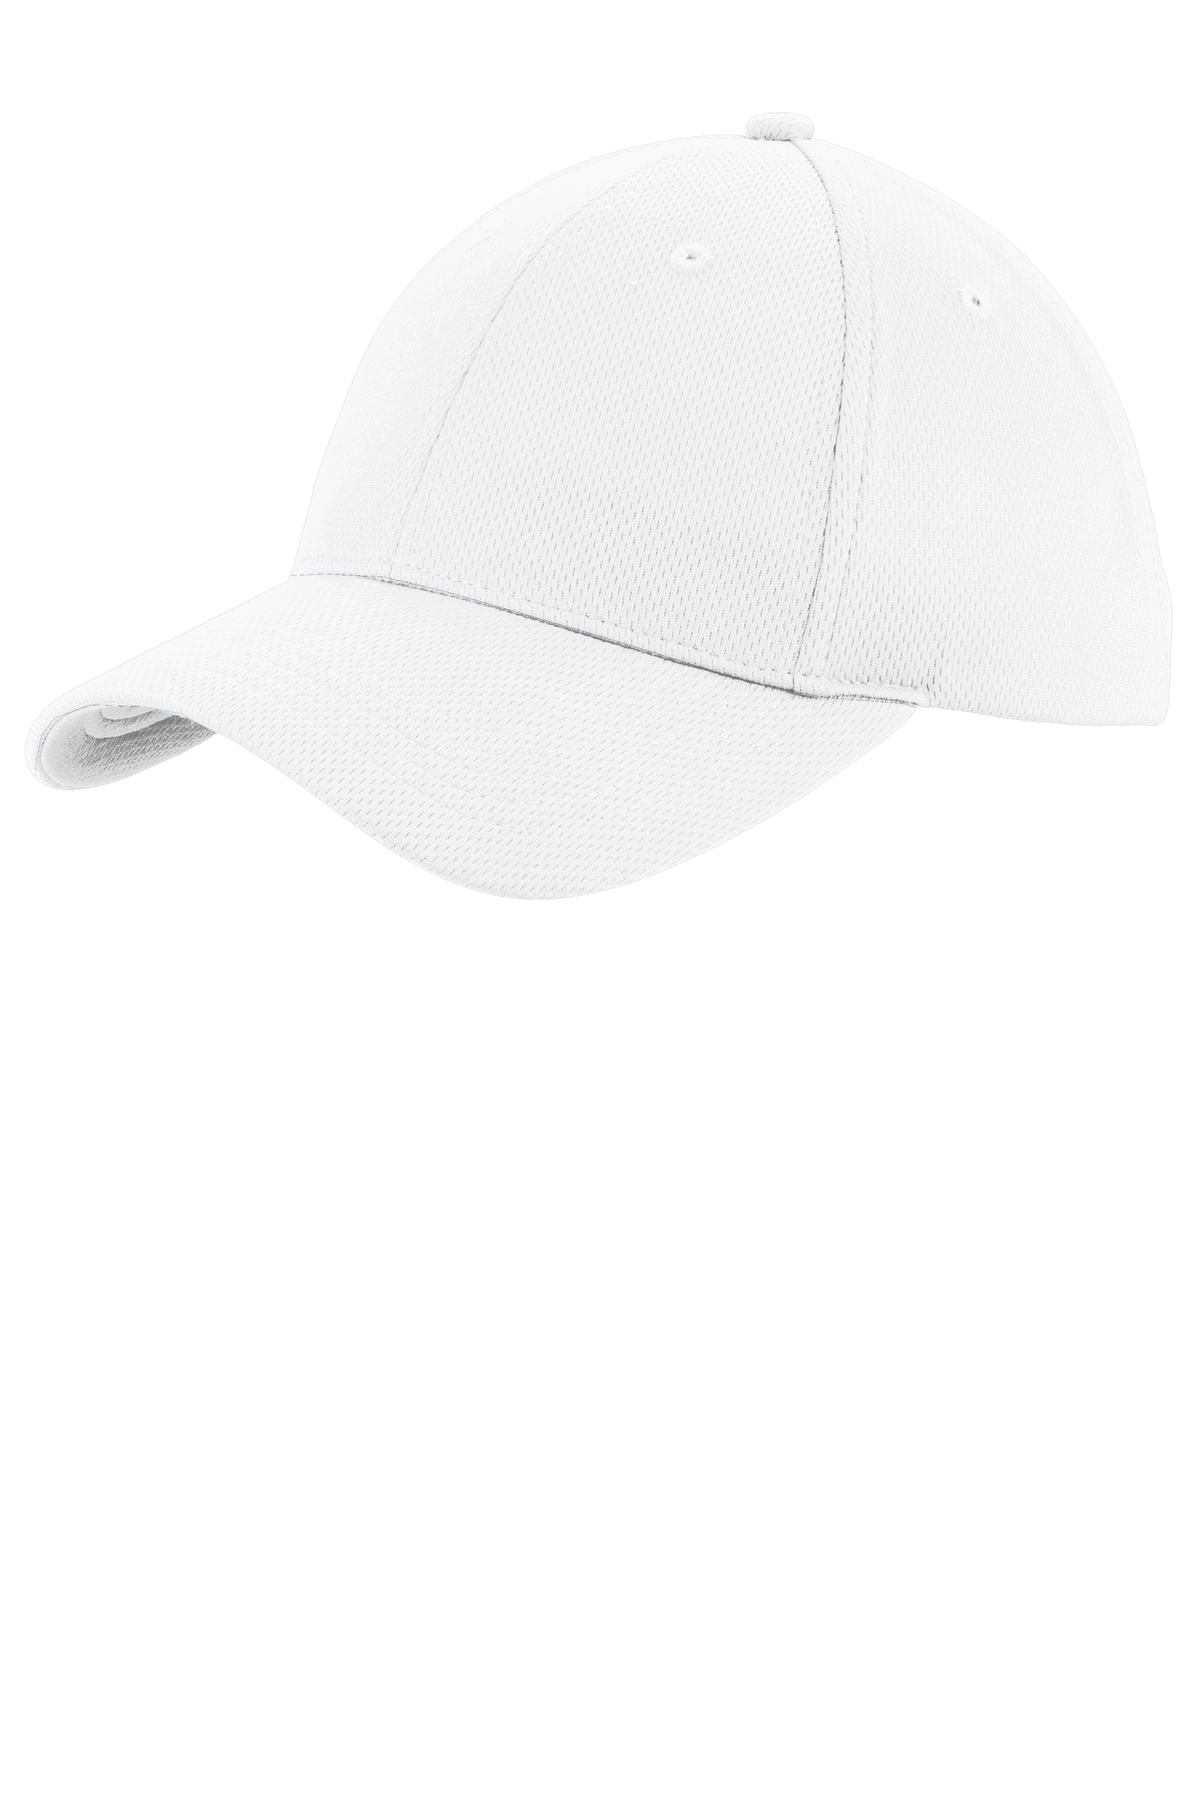 Sport-Tek ®  Youth PosiCharge ®  RacerMesh ®  Cap. YSTC26 - White